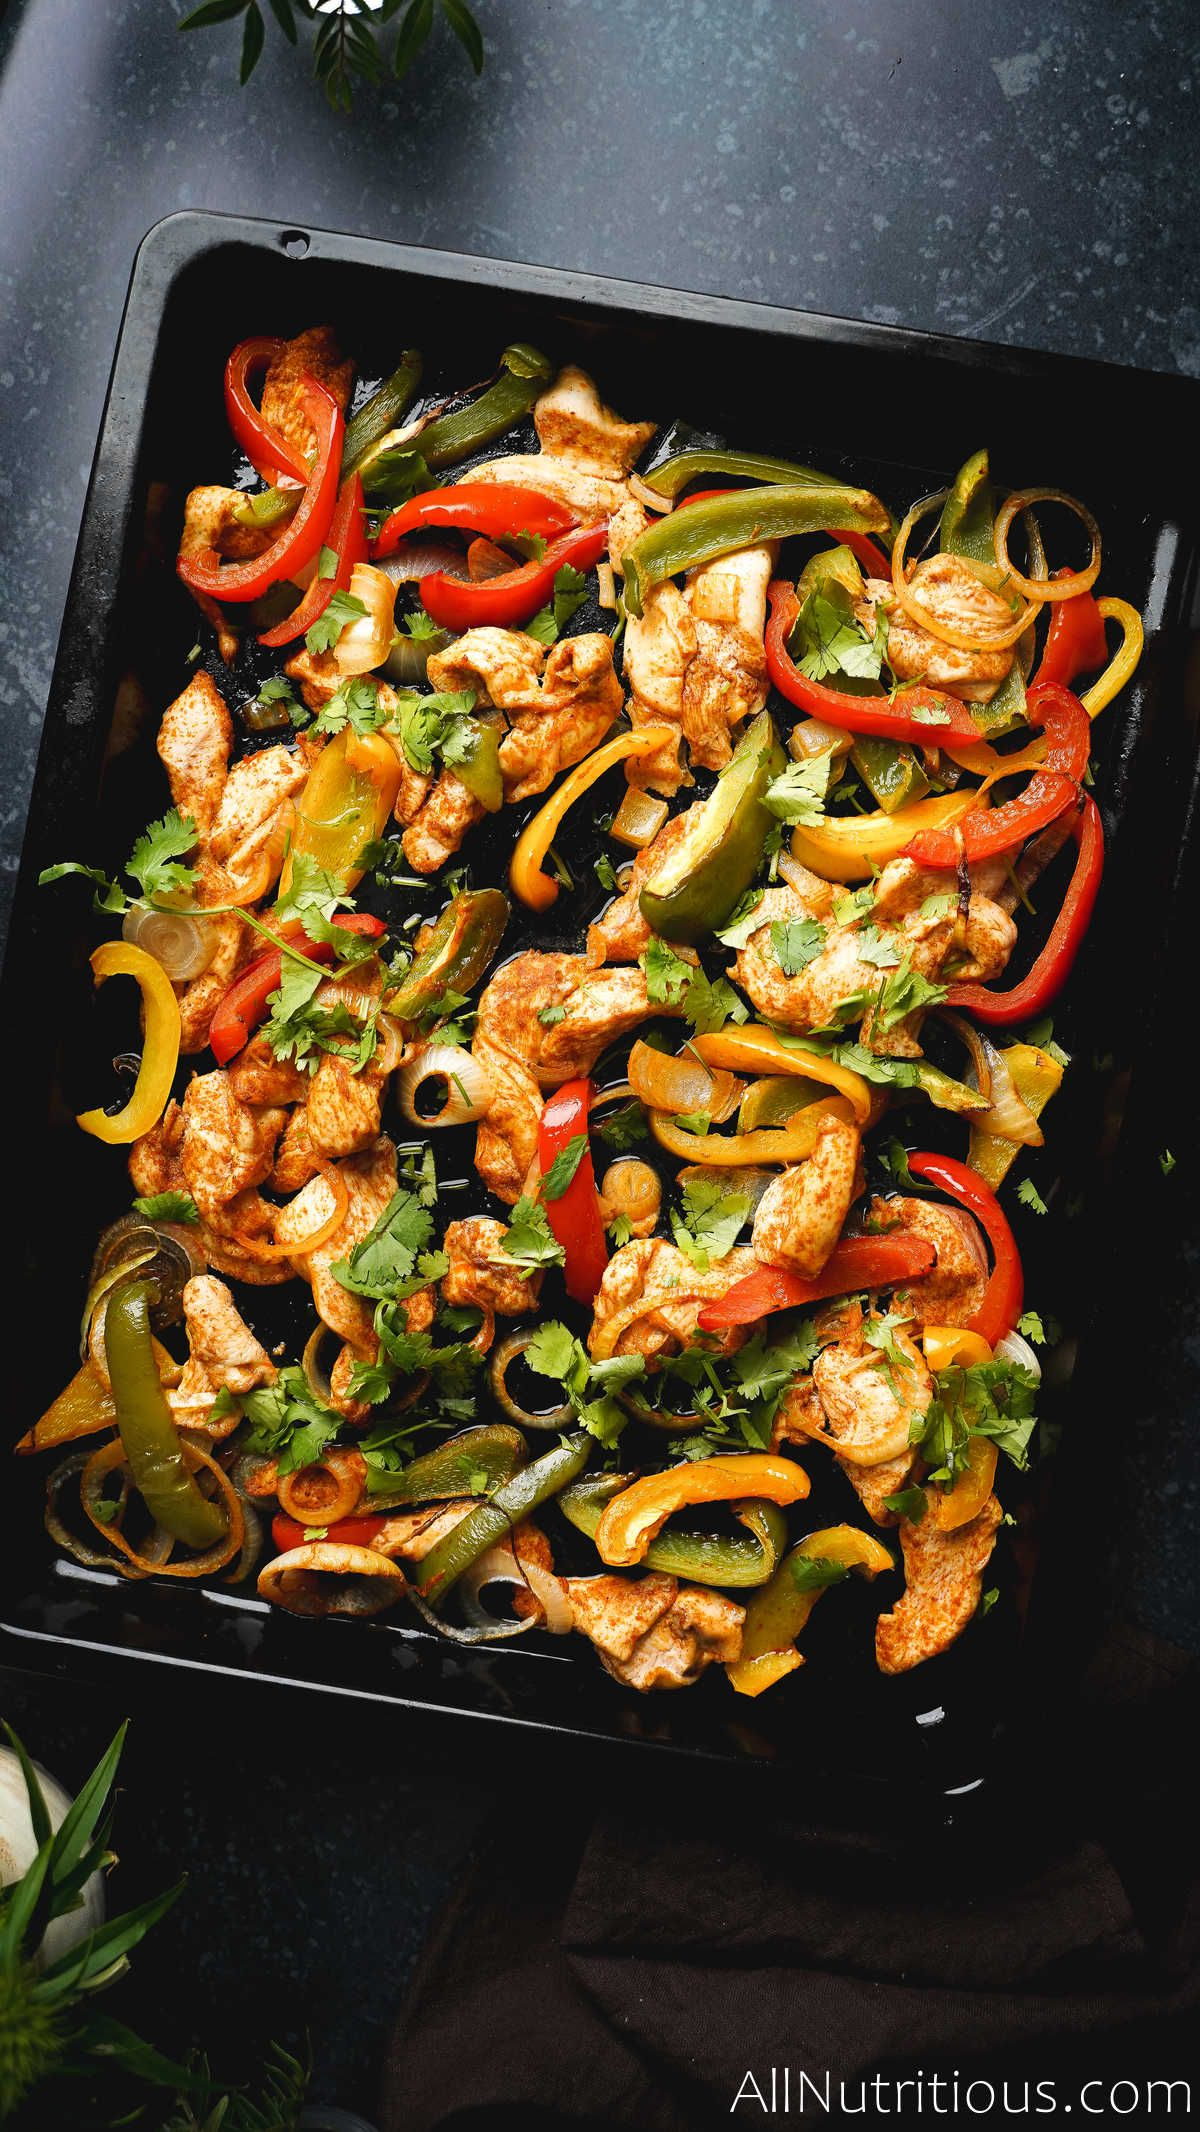 cooked sheet pan chicken and veggies